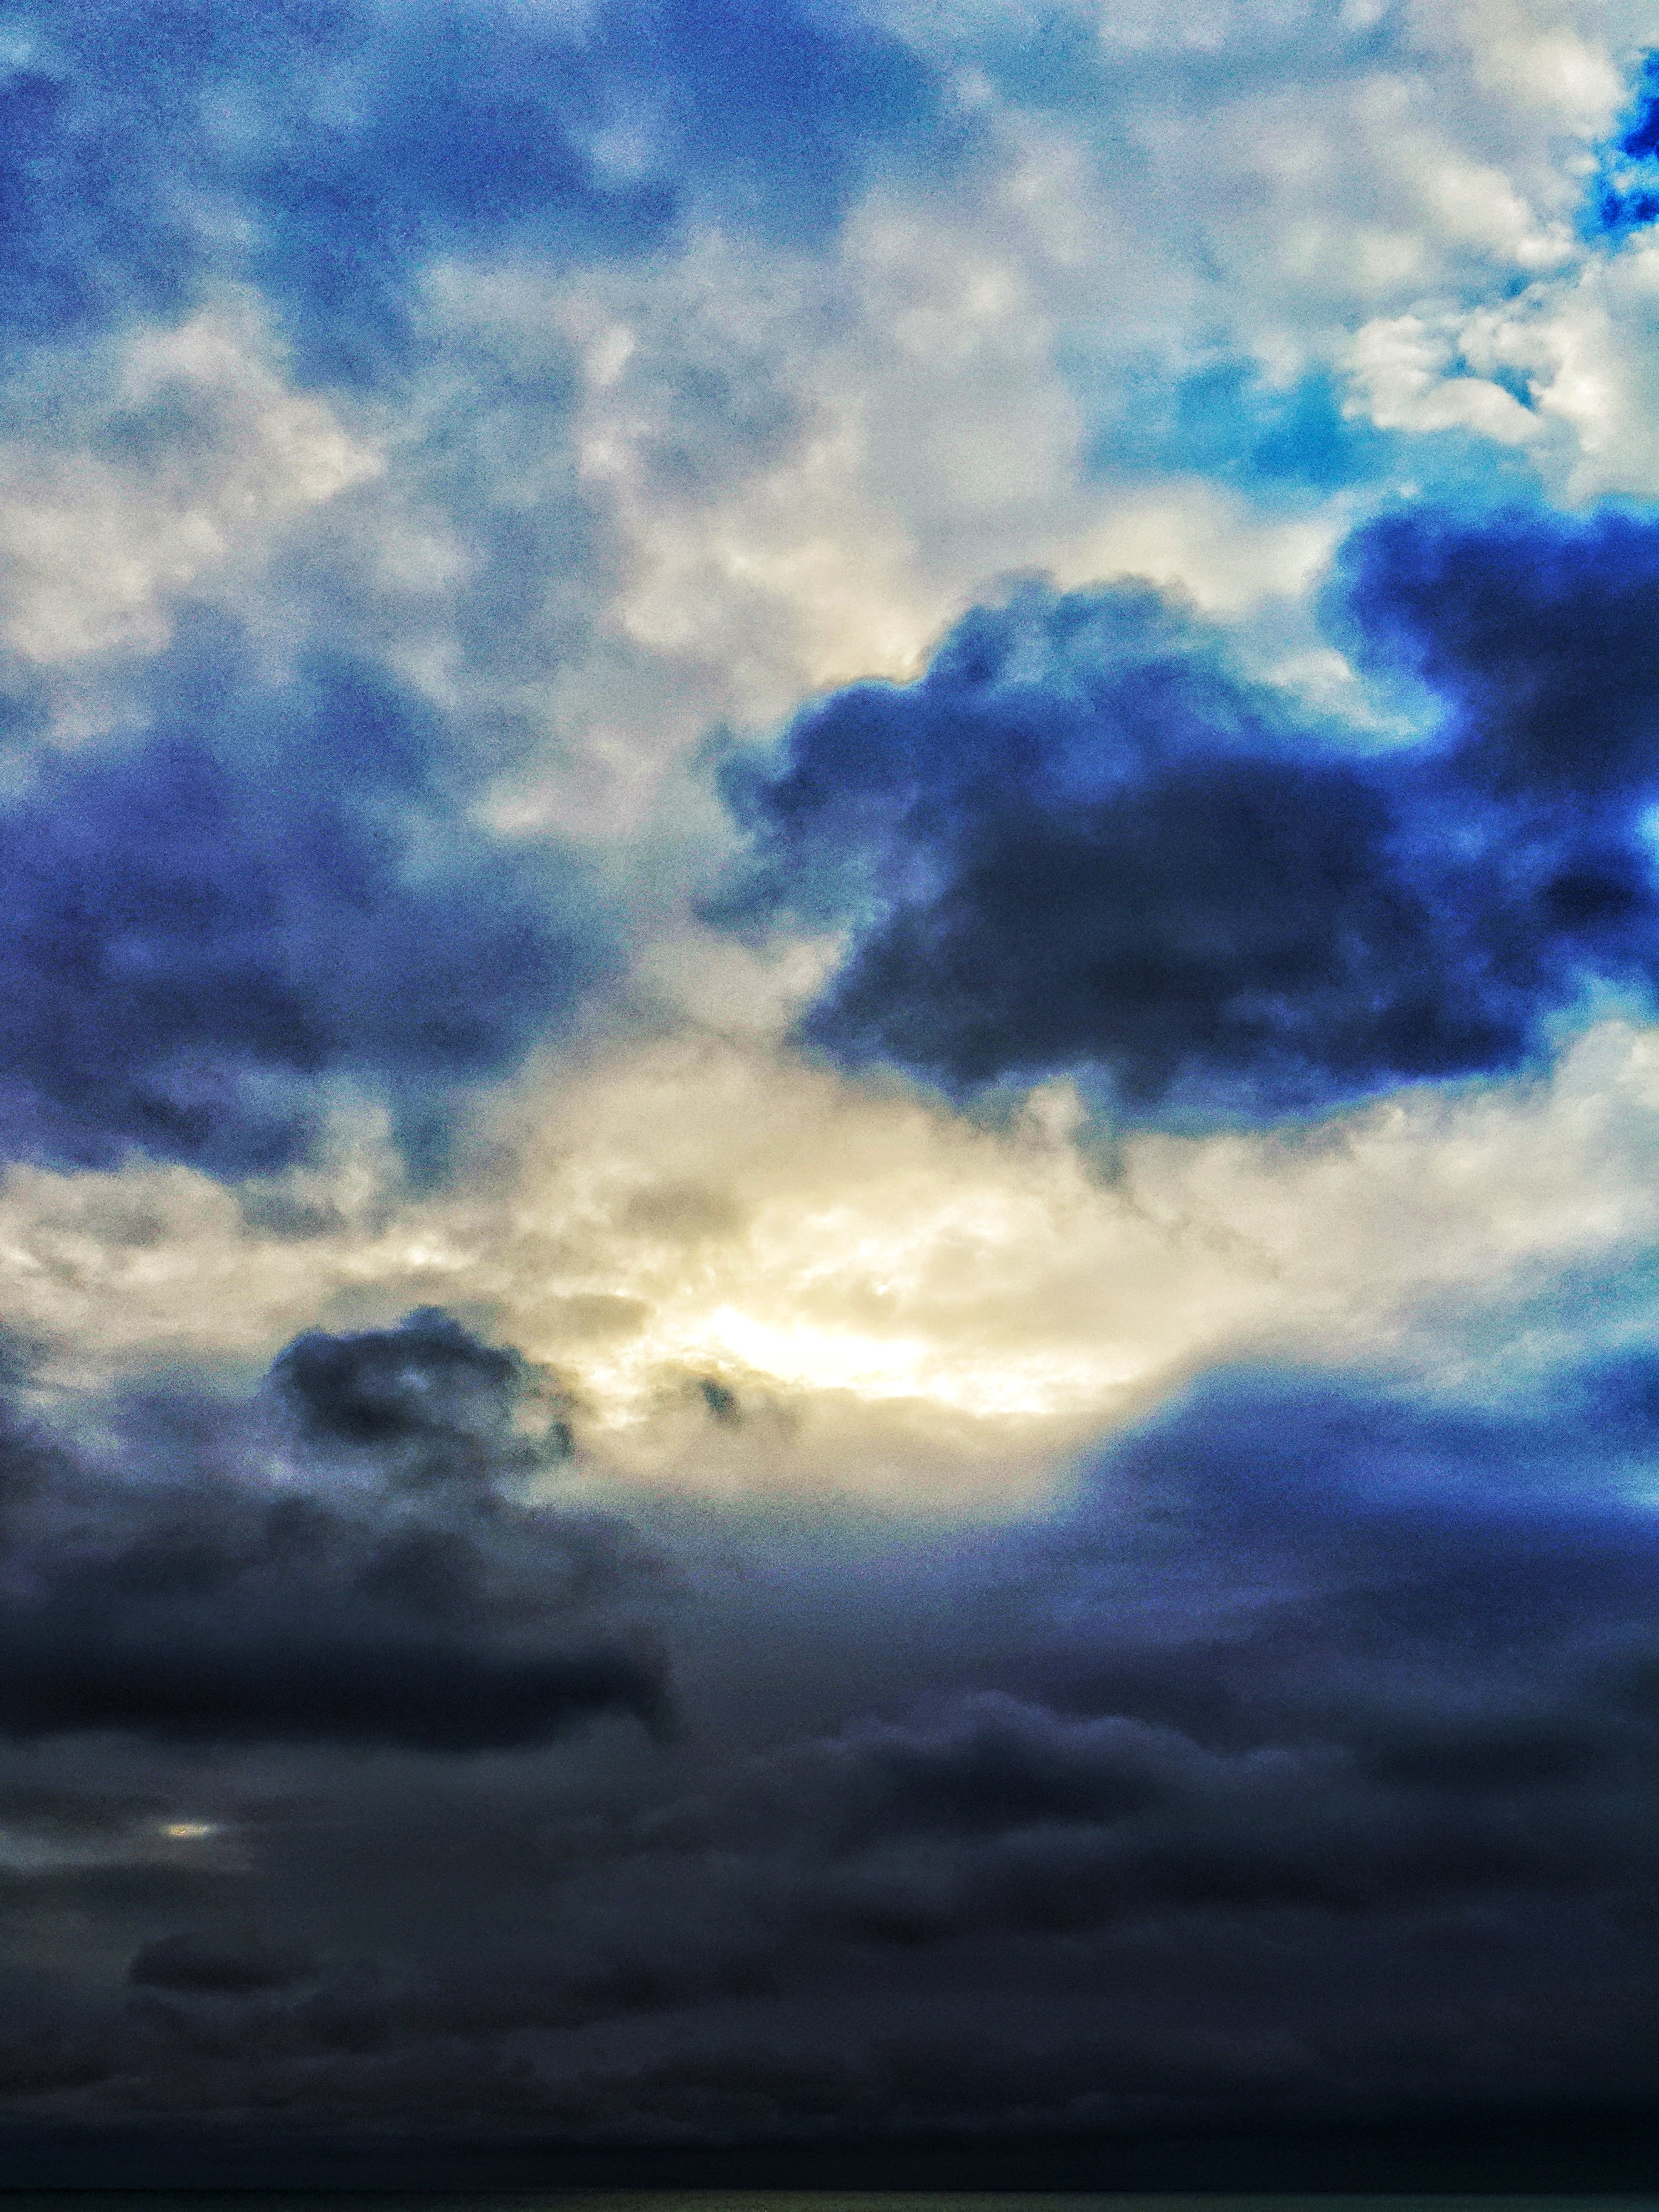 Free stock photo of blue sky, clouds, cloudy sky, contrast